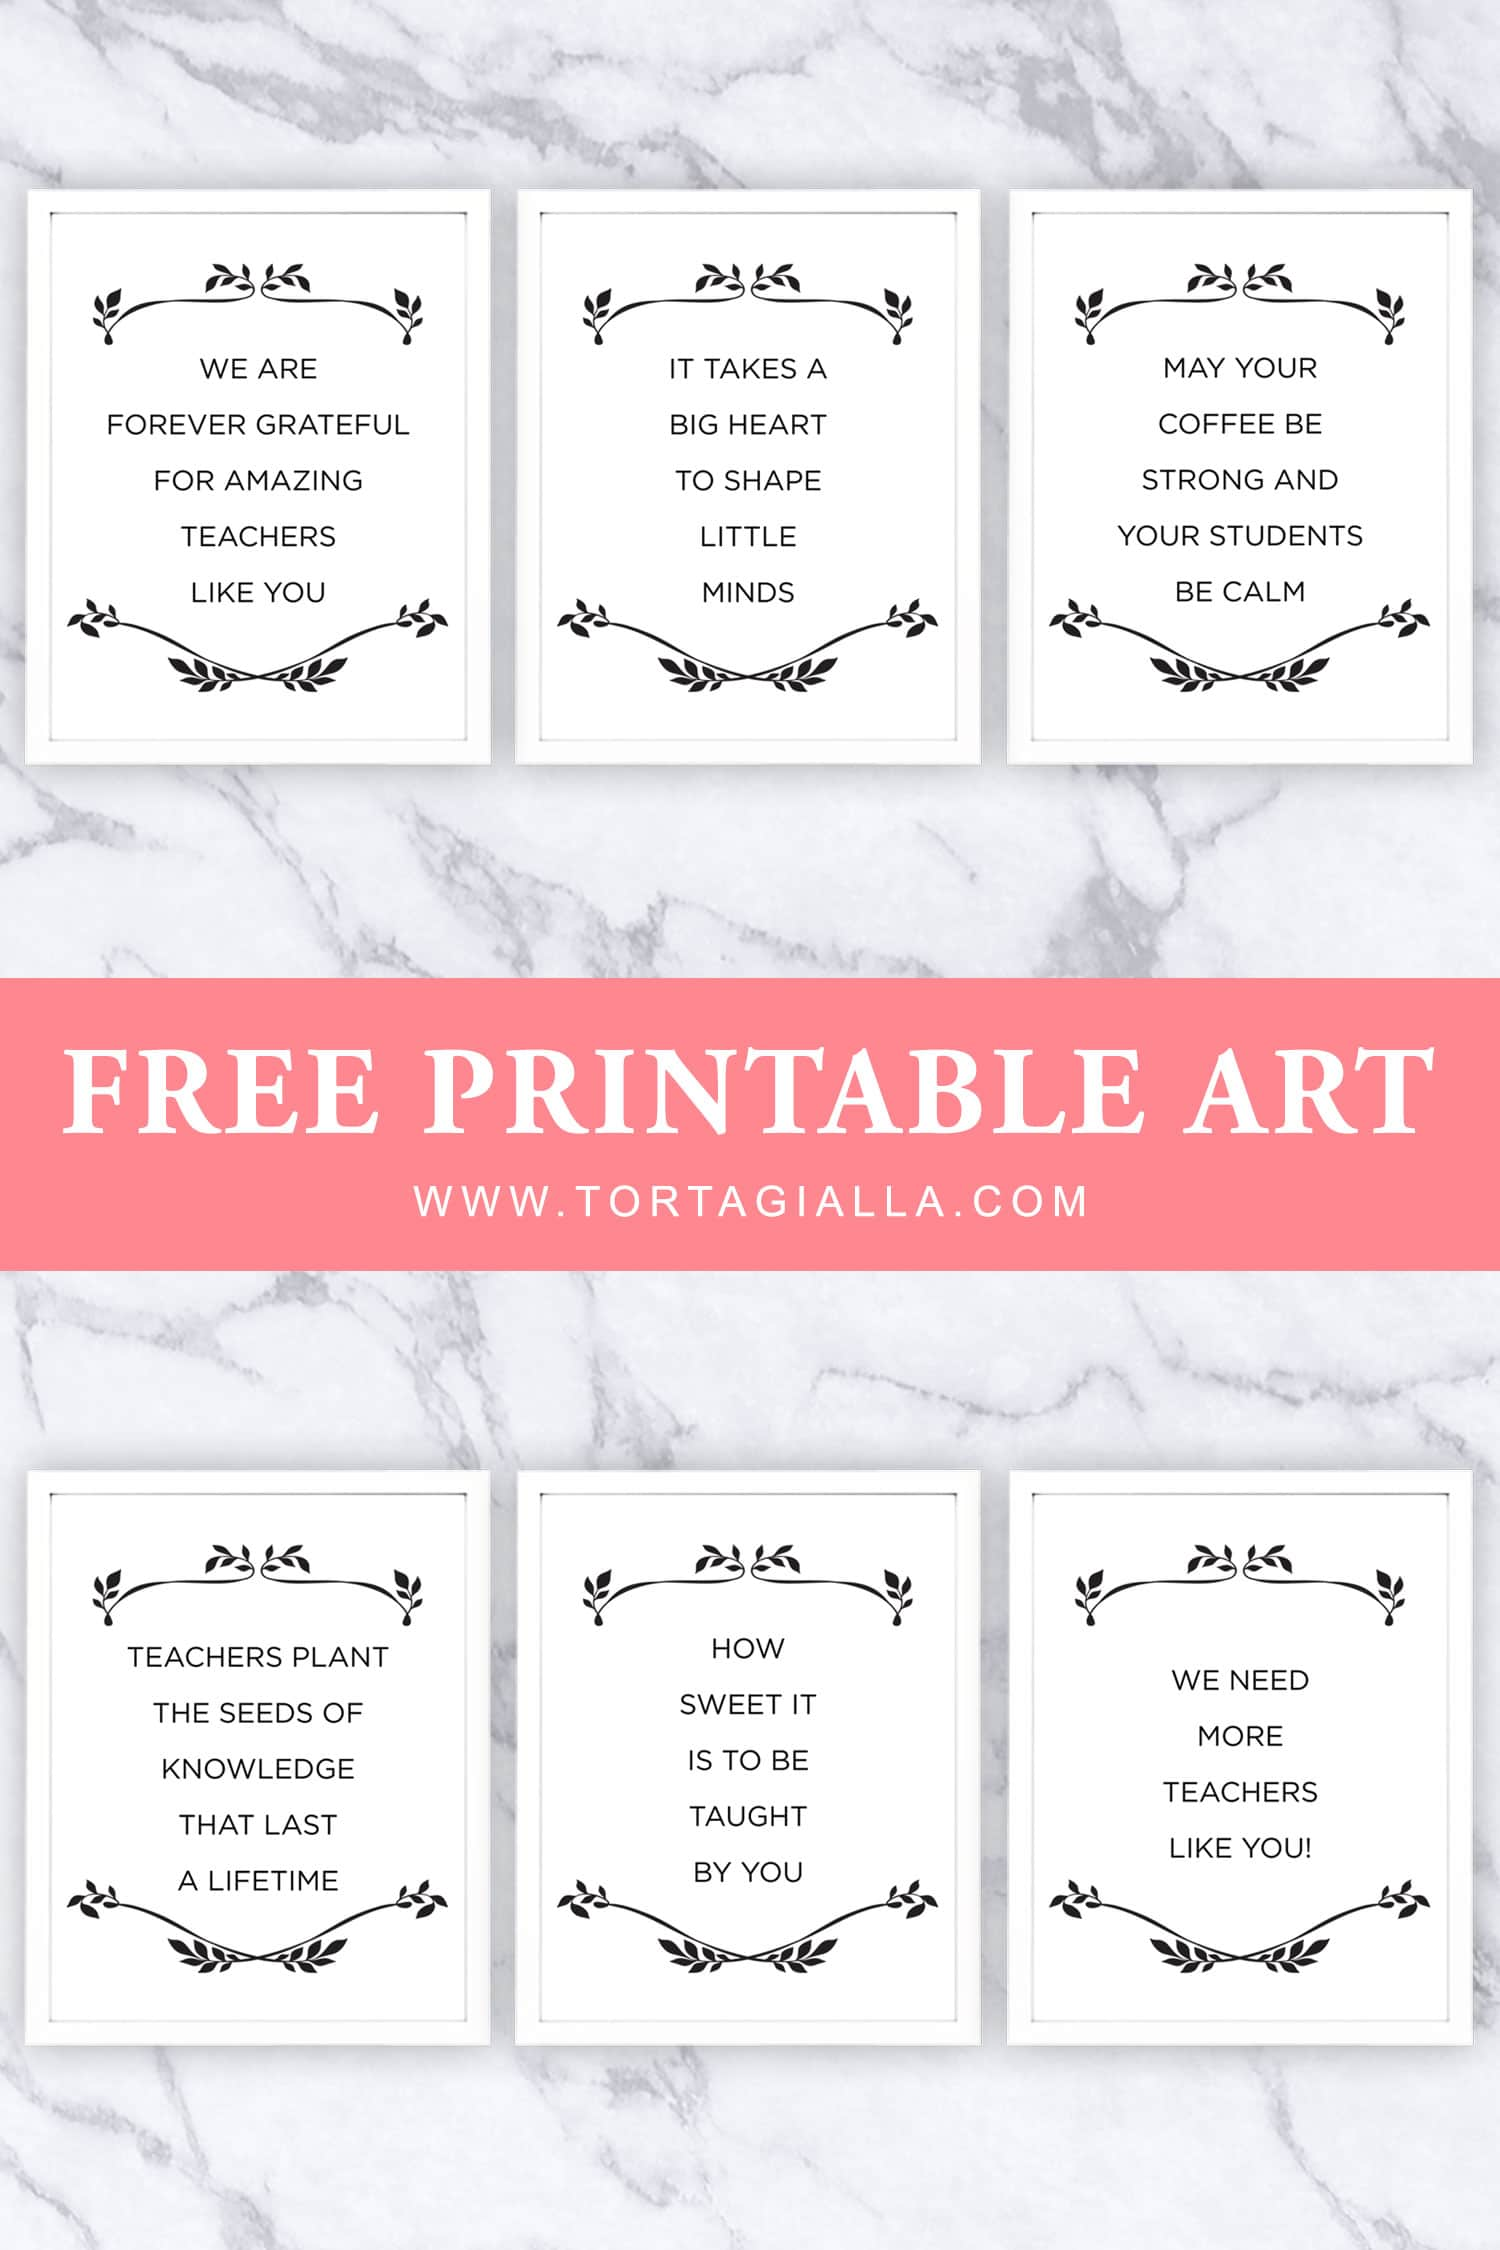 graphic regarding Free Printable Teacher Appreciation Tags named Absolutely free Printable Trainer Appreciation Quotations tortagialla